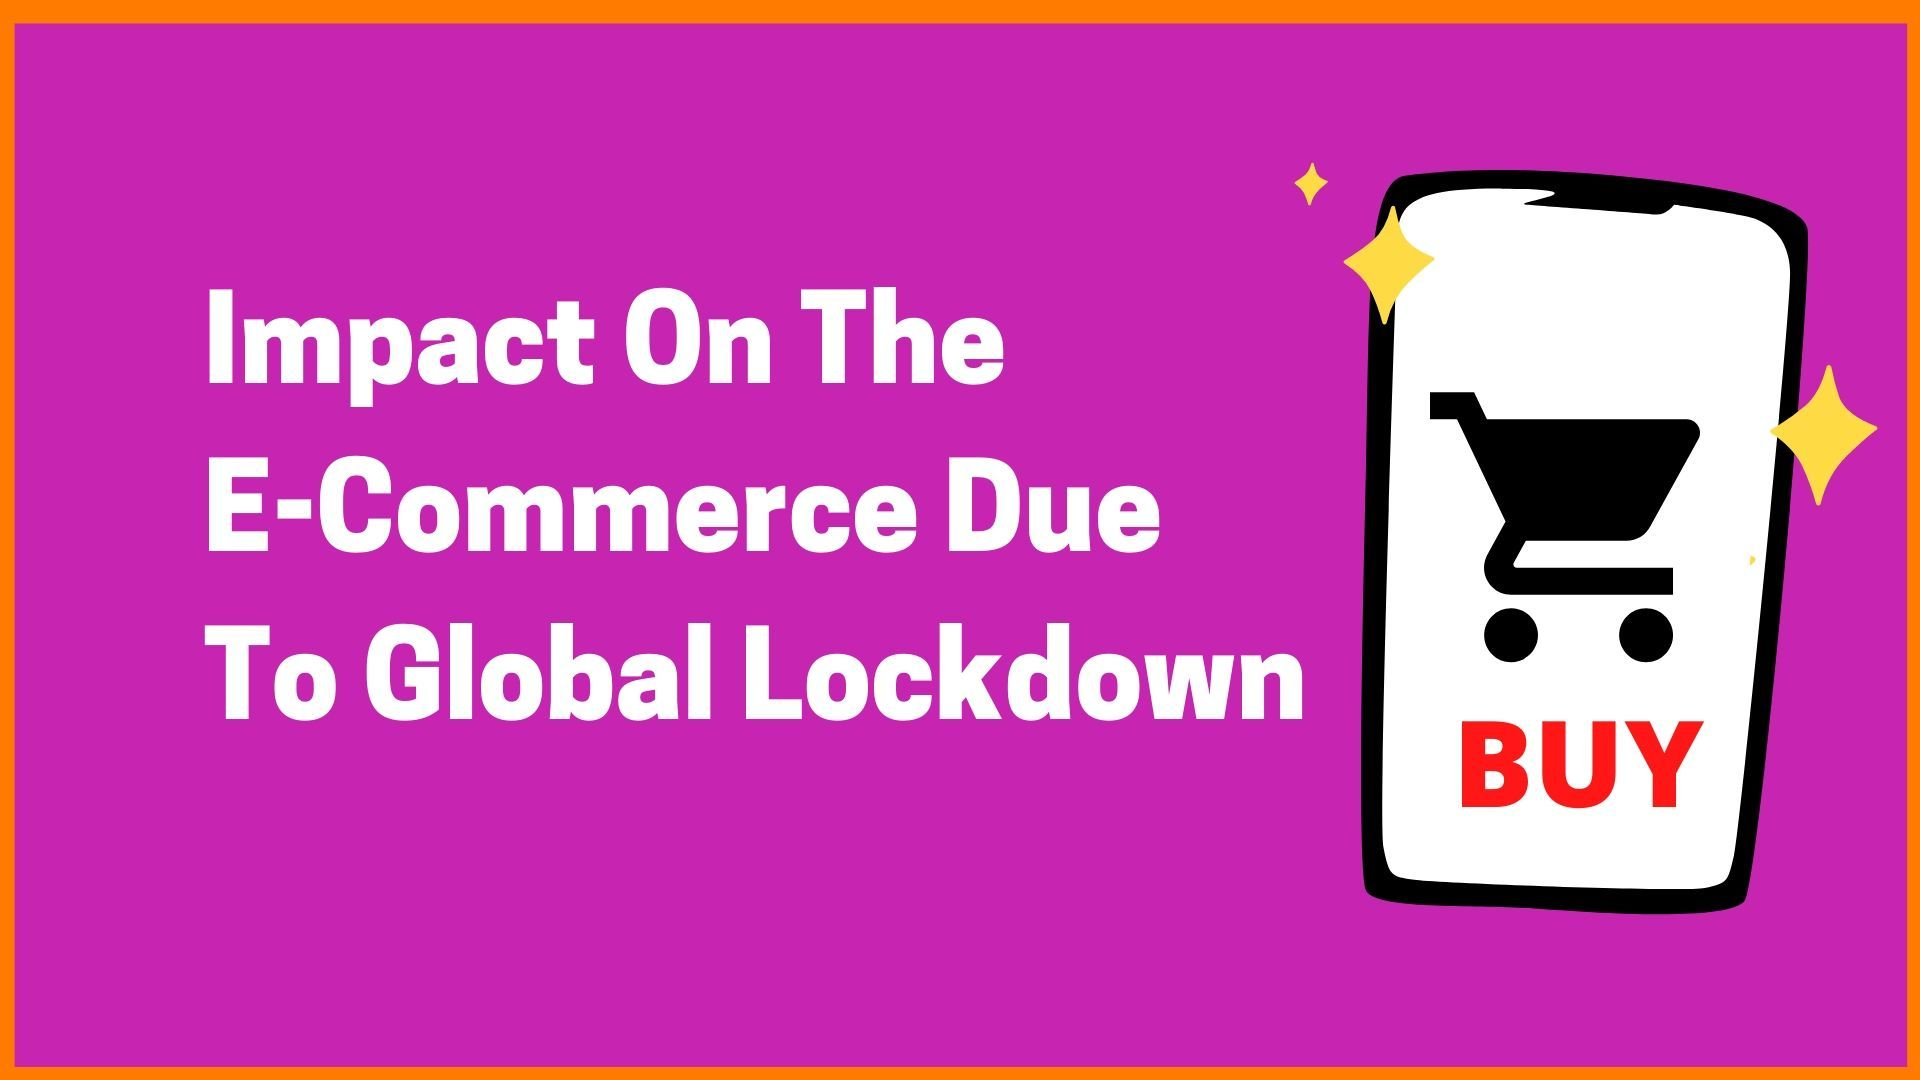 Impact On The E-Commerce Due To Global Lockdown